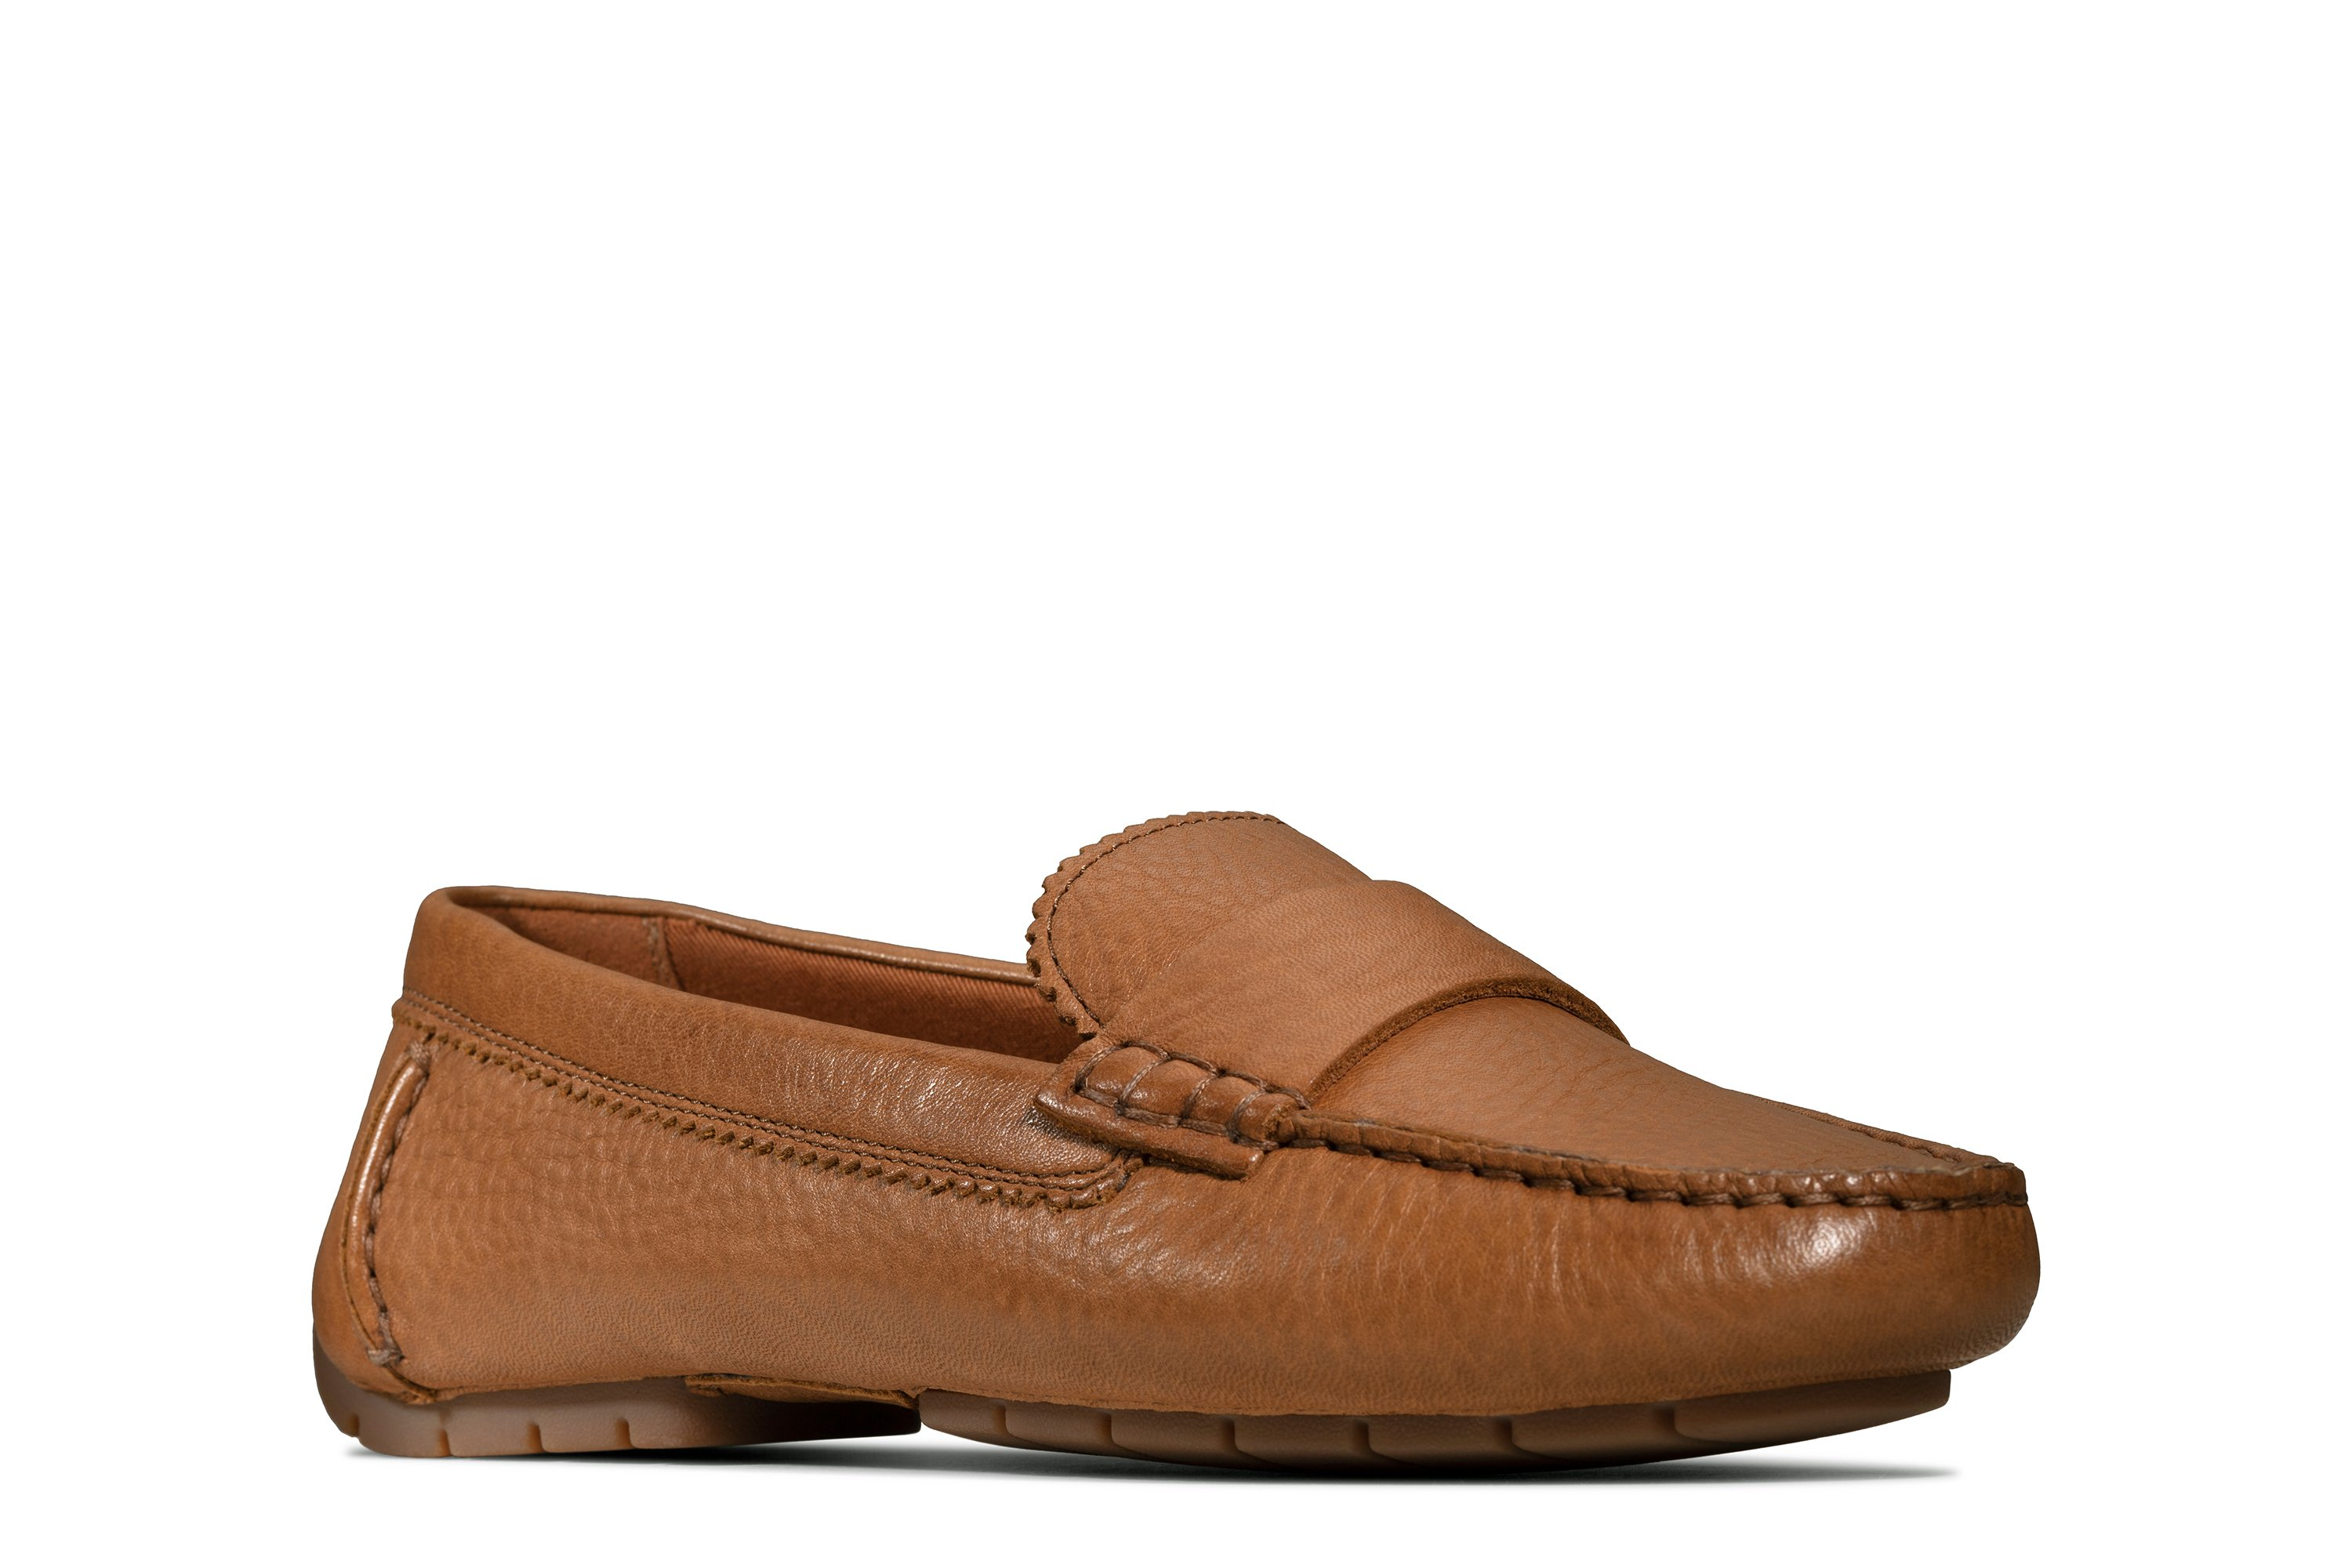 Clarks C Mocc Tan Leather 26147865